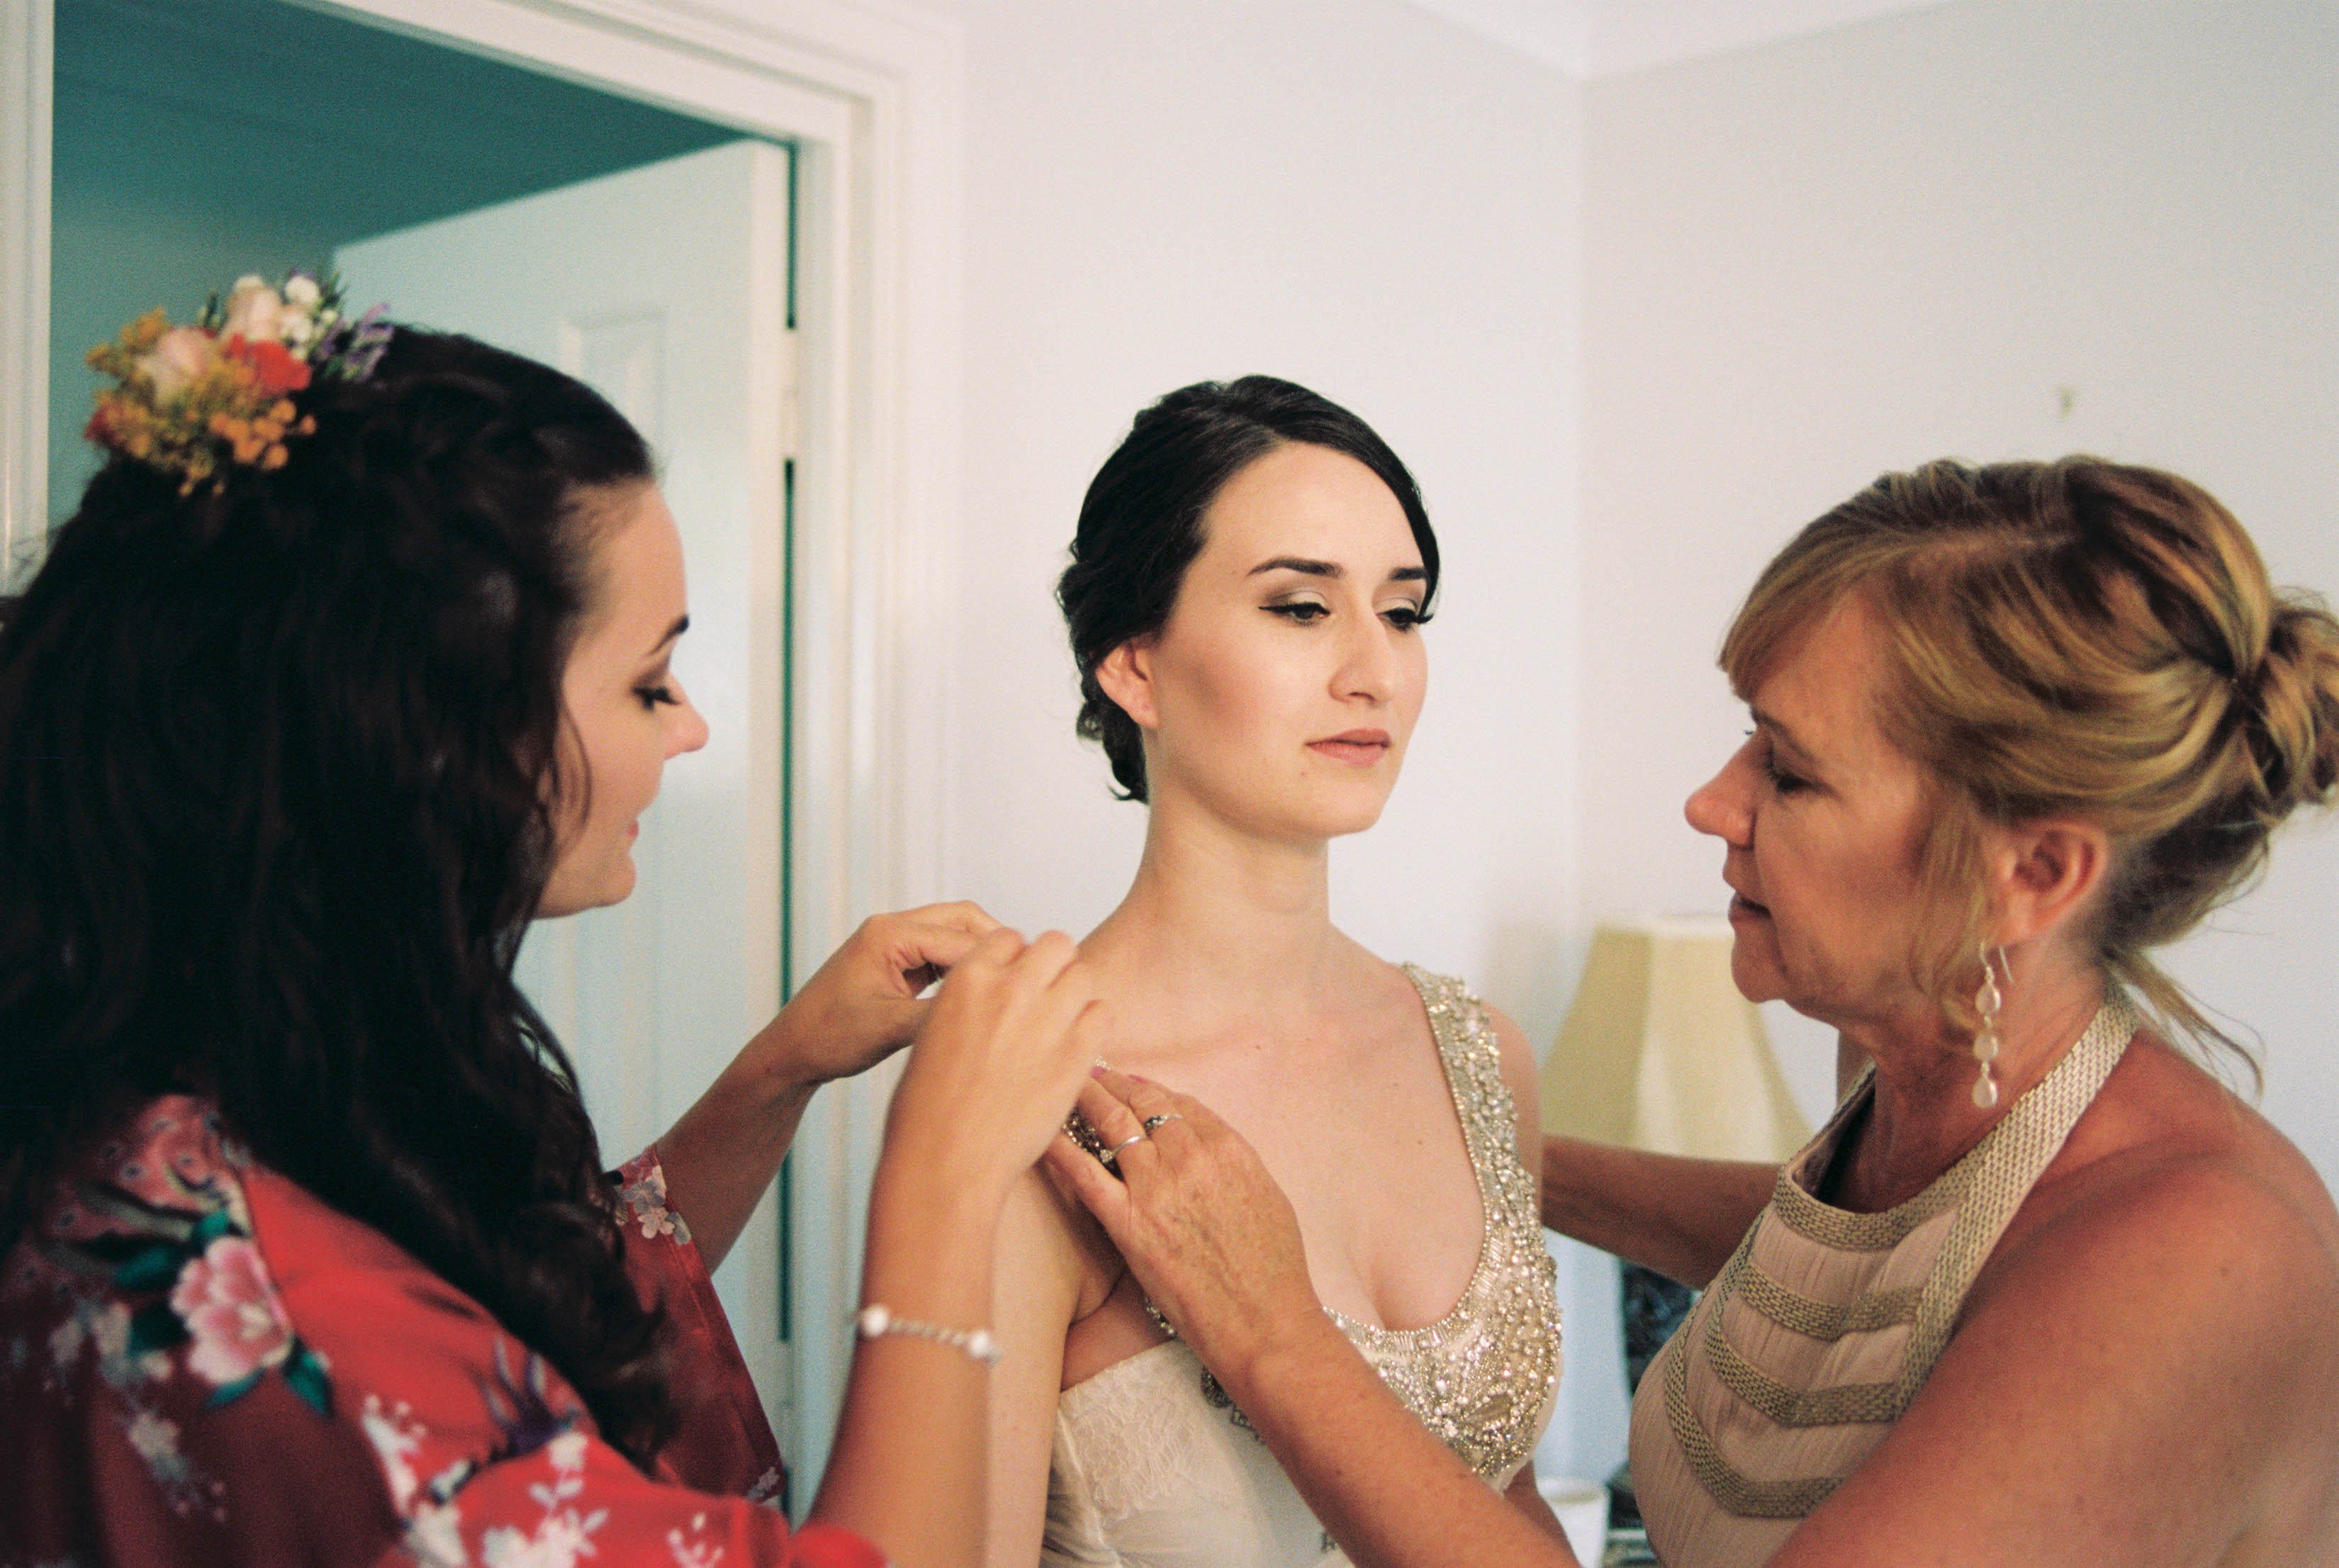 A photo of the bride's Mum and Maid of Honour helping her with her dress before her Destination Wedding in the South West